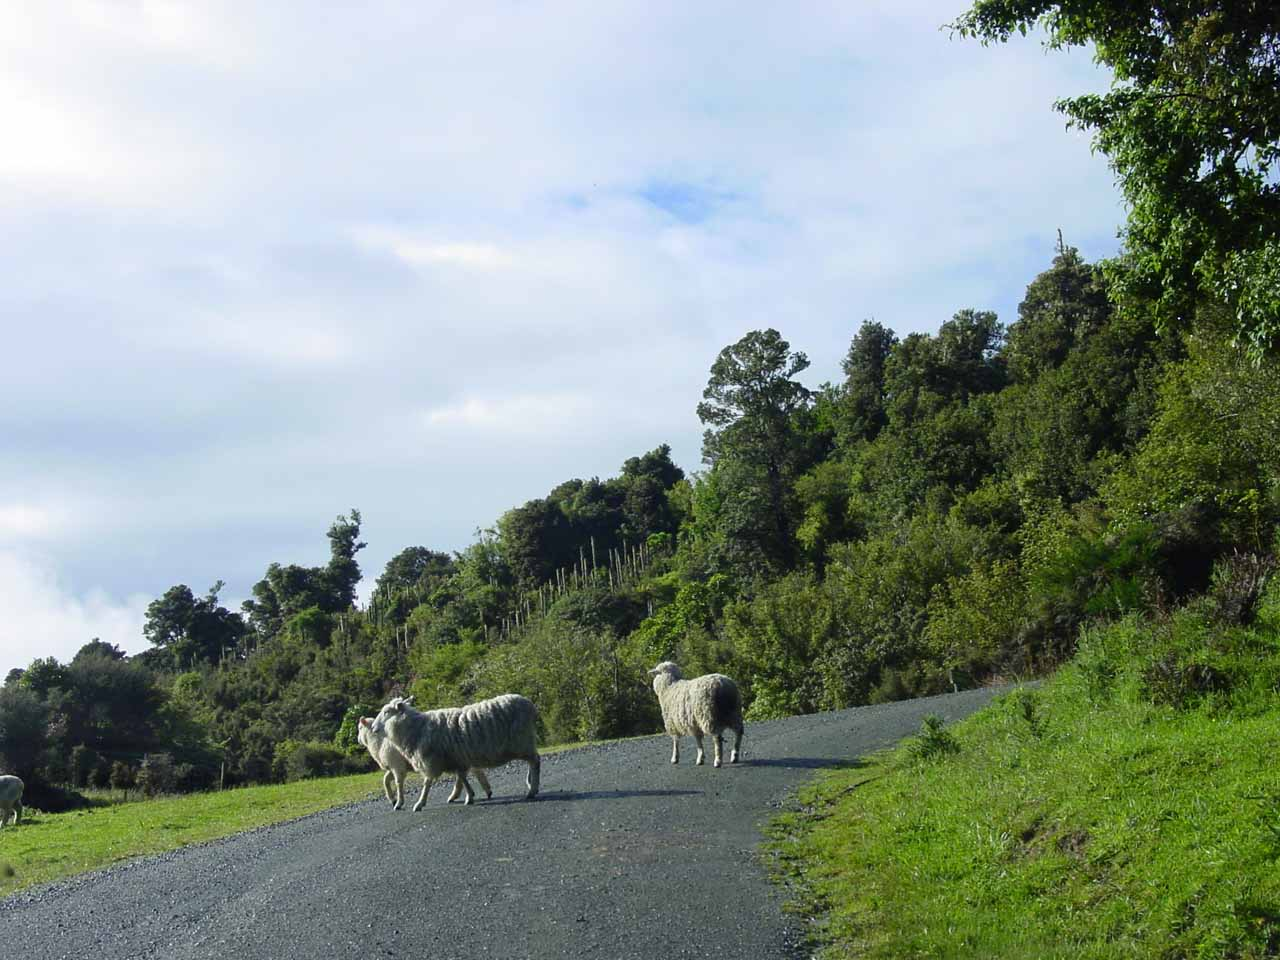 Sharing the Rewcastle Road with sheep